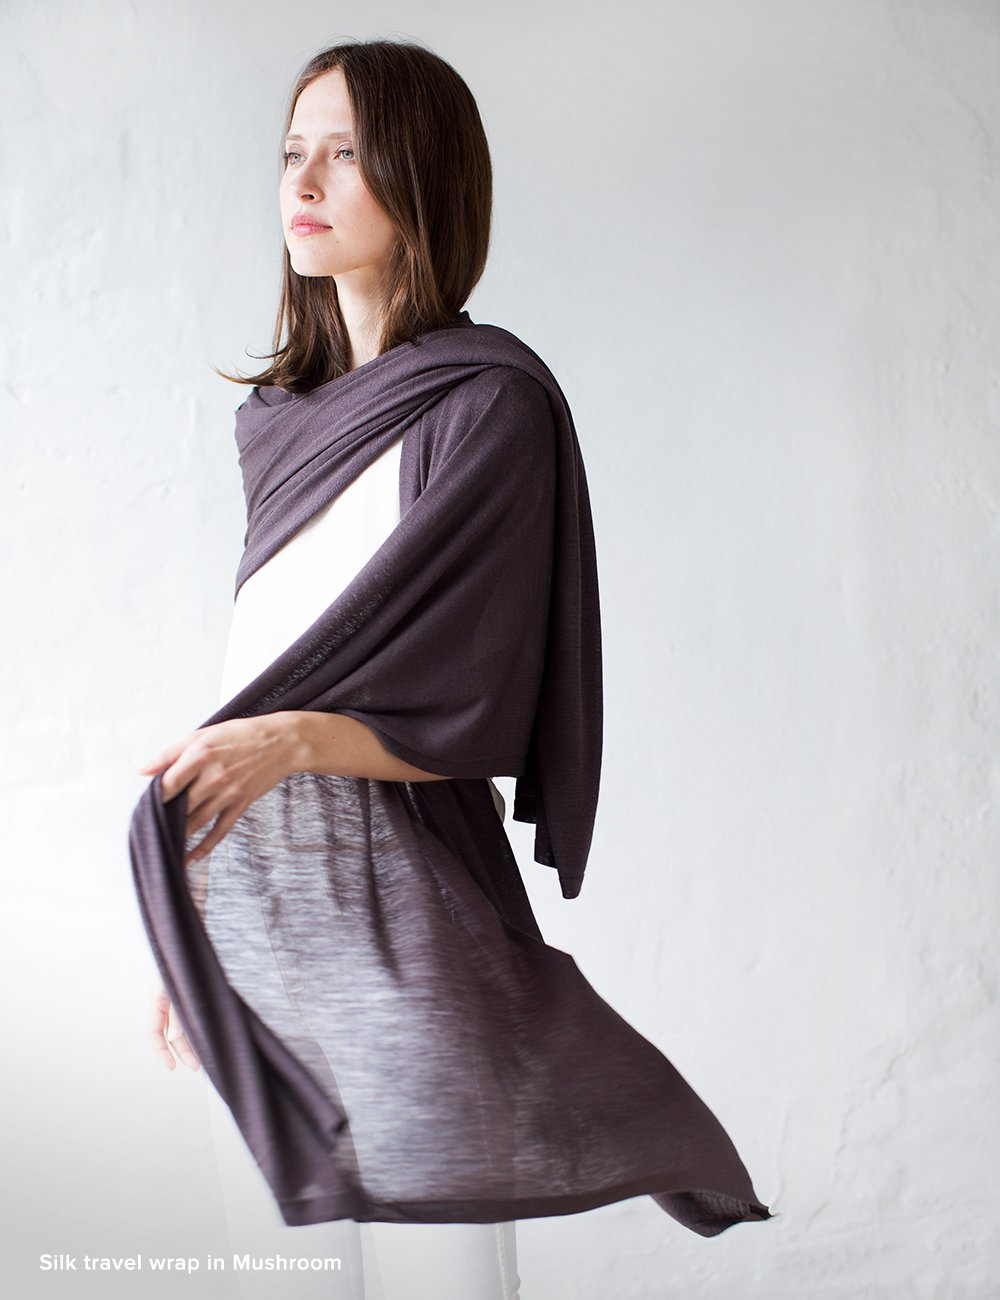 Australian Superfine Merino Wrap Travel Size - Silk Mushroom